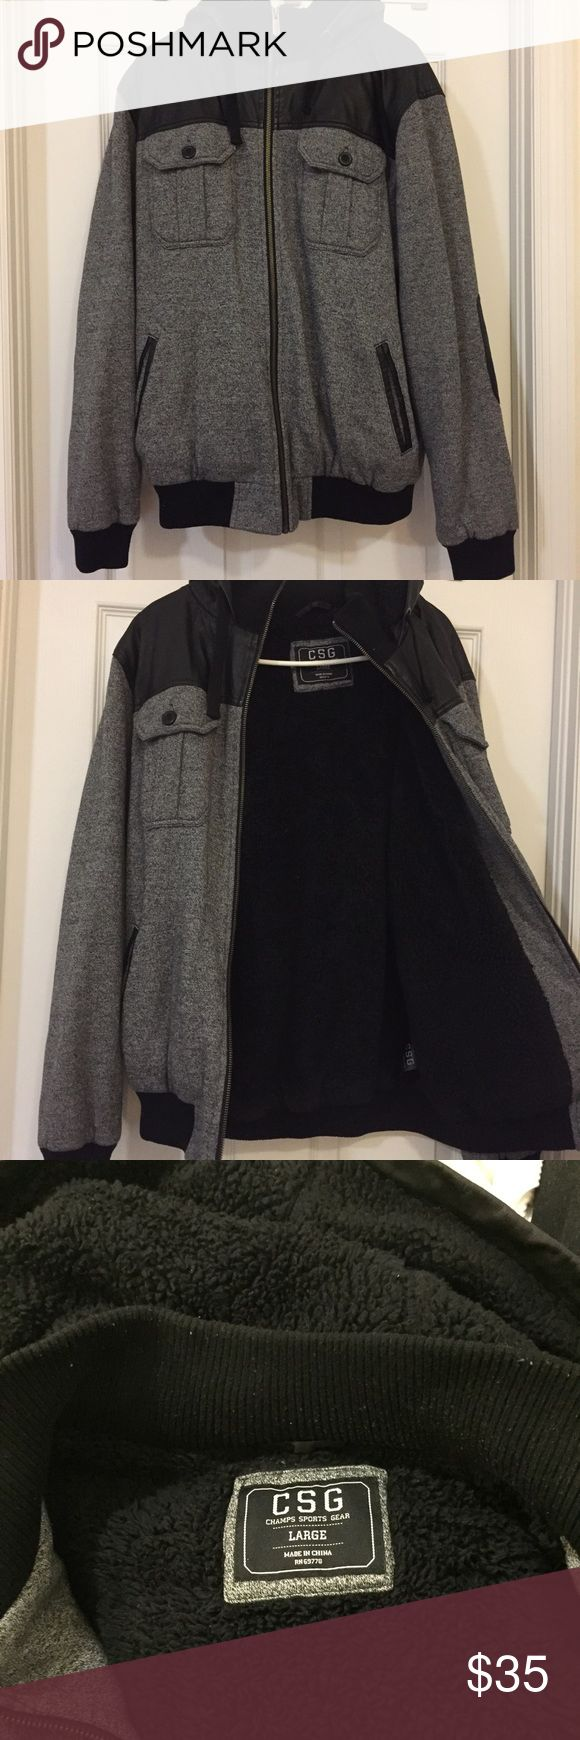 Champ sports gear jacket with hood. Large Super warm. Fit true to size. Still in good condition. Please feel free to make an offer. Champ Sports Gear Jackets & Coats